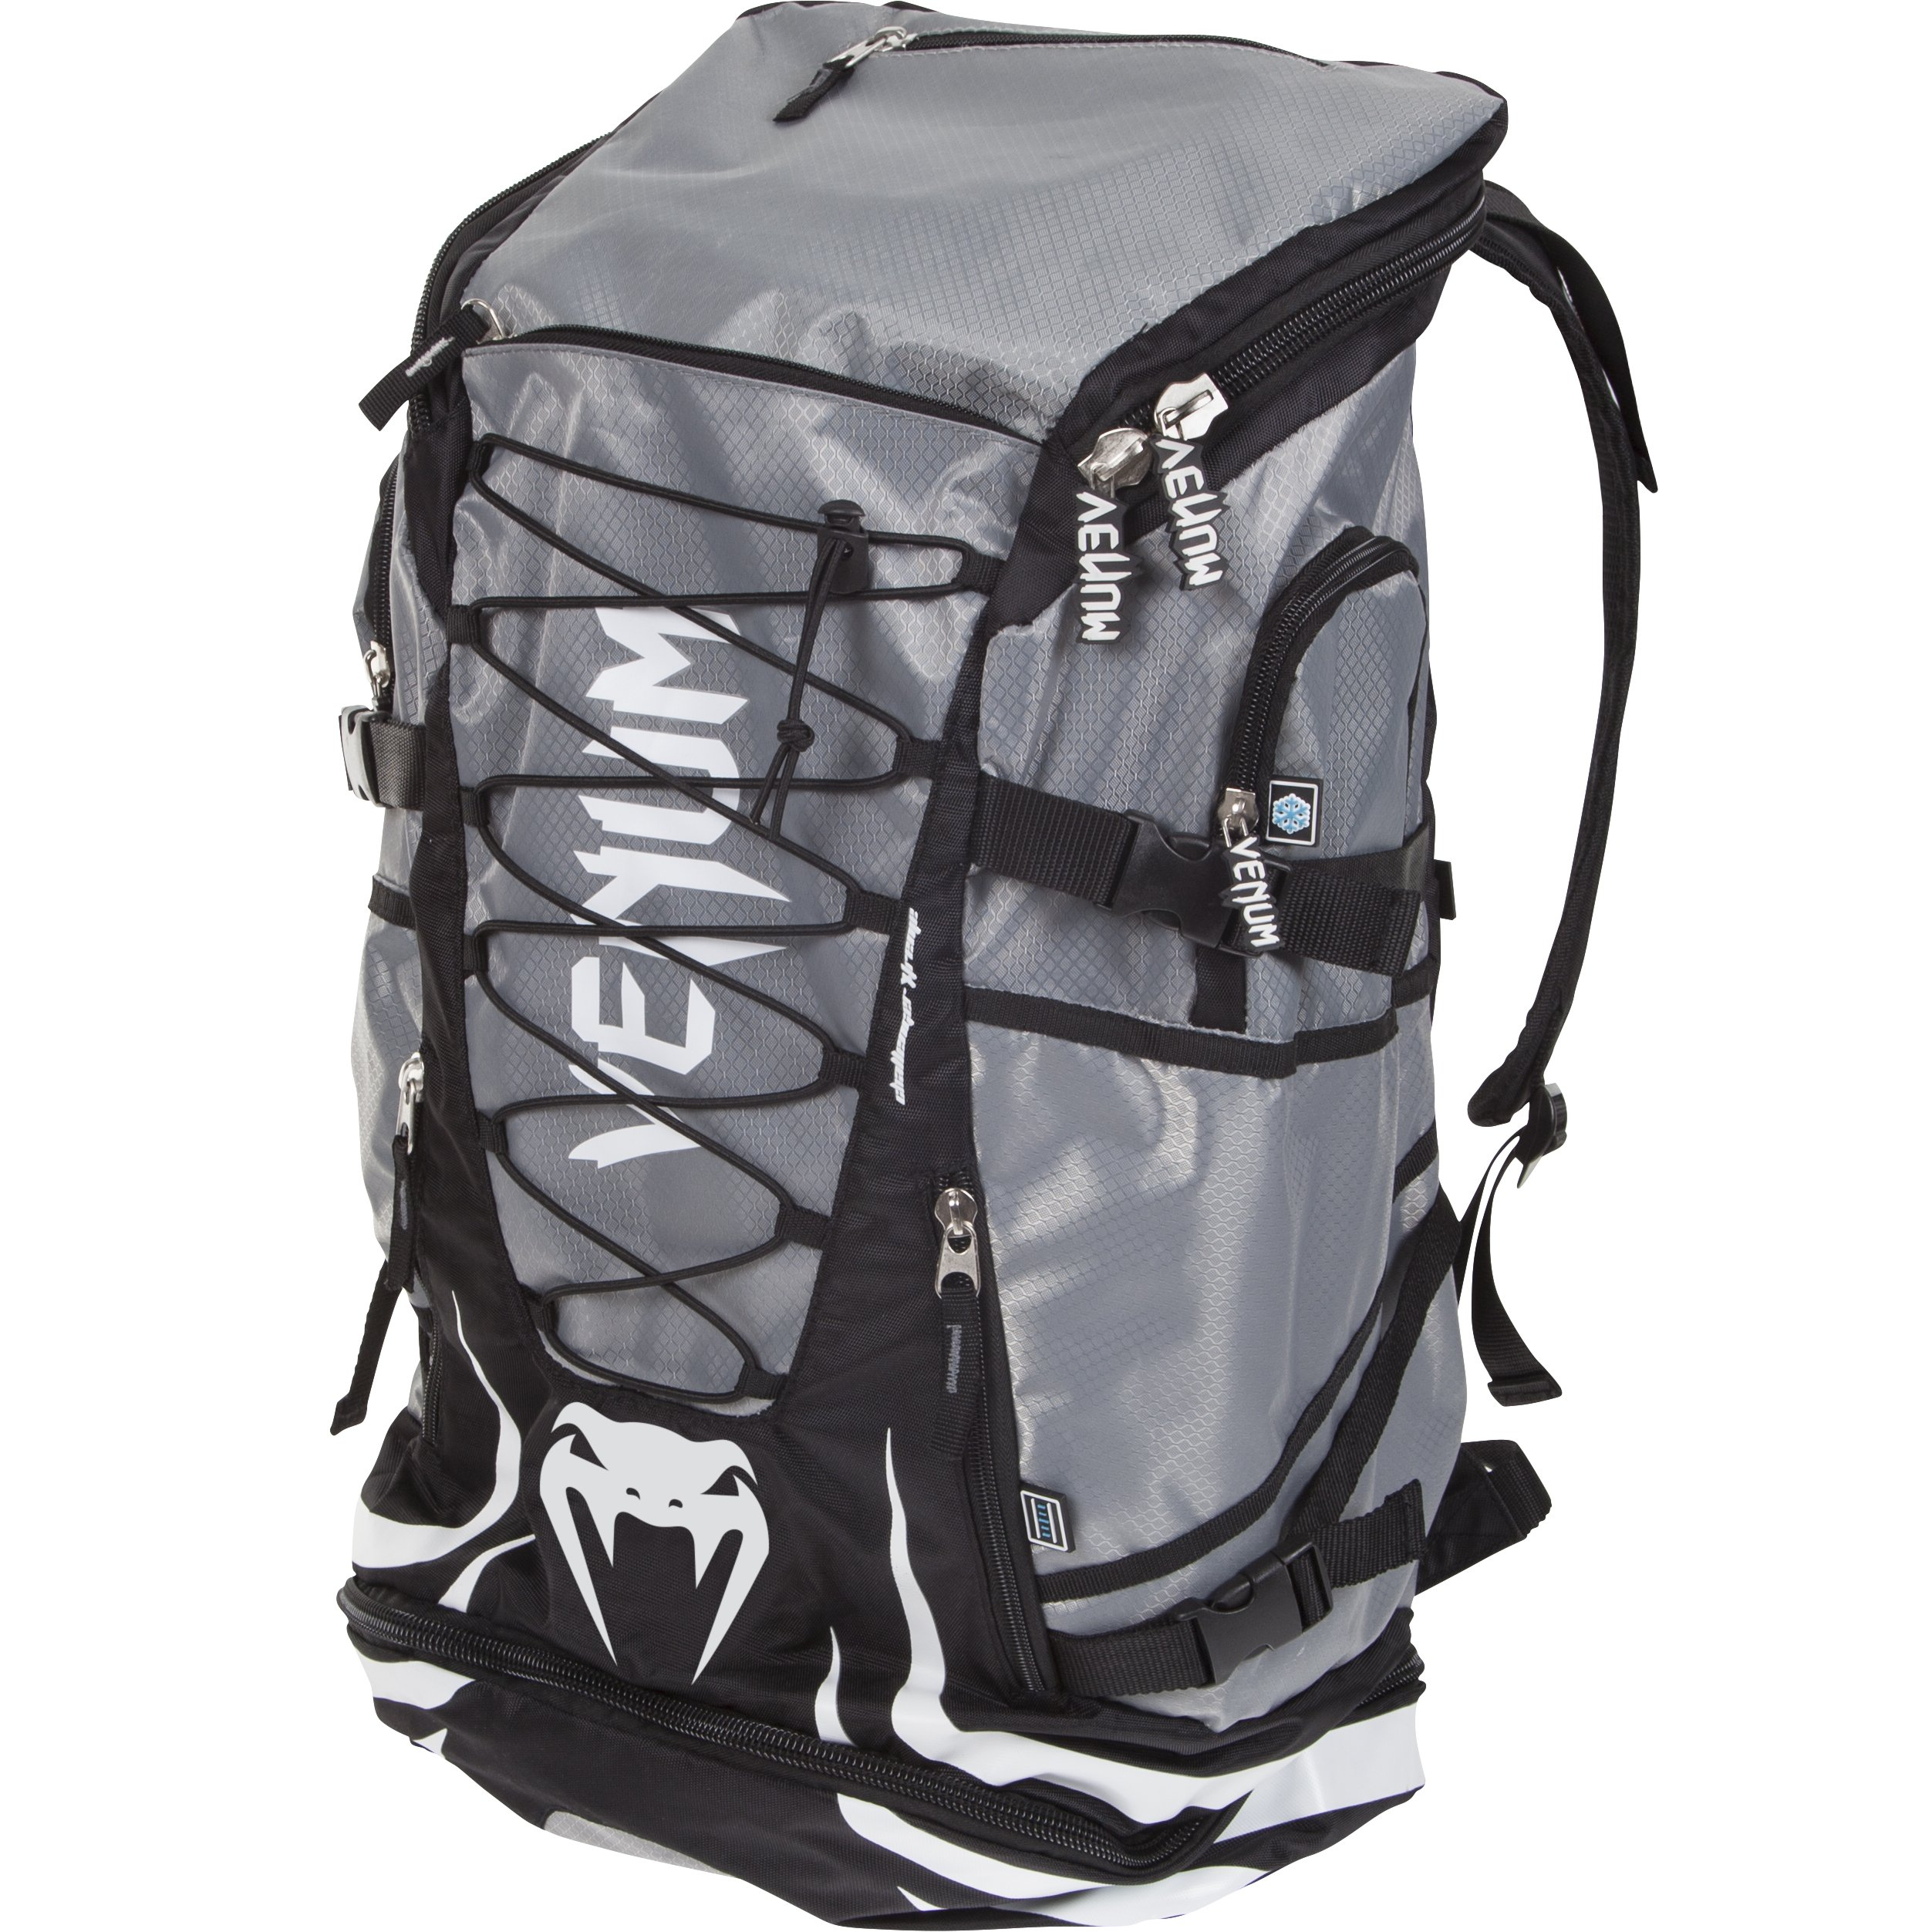 Venum ''Challenger Xtreme Backpack, Black/Grey, One Size